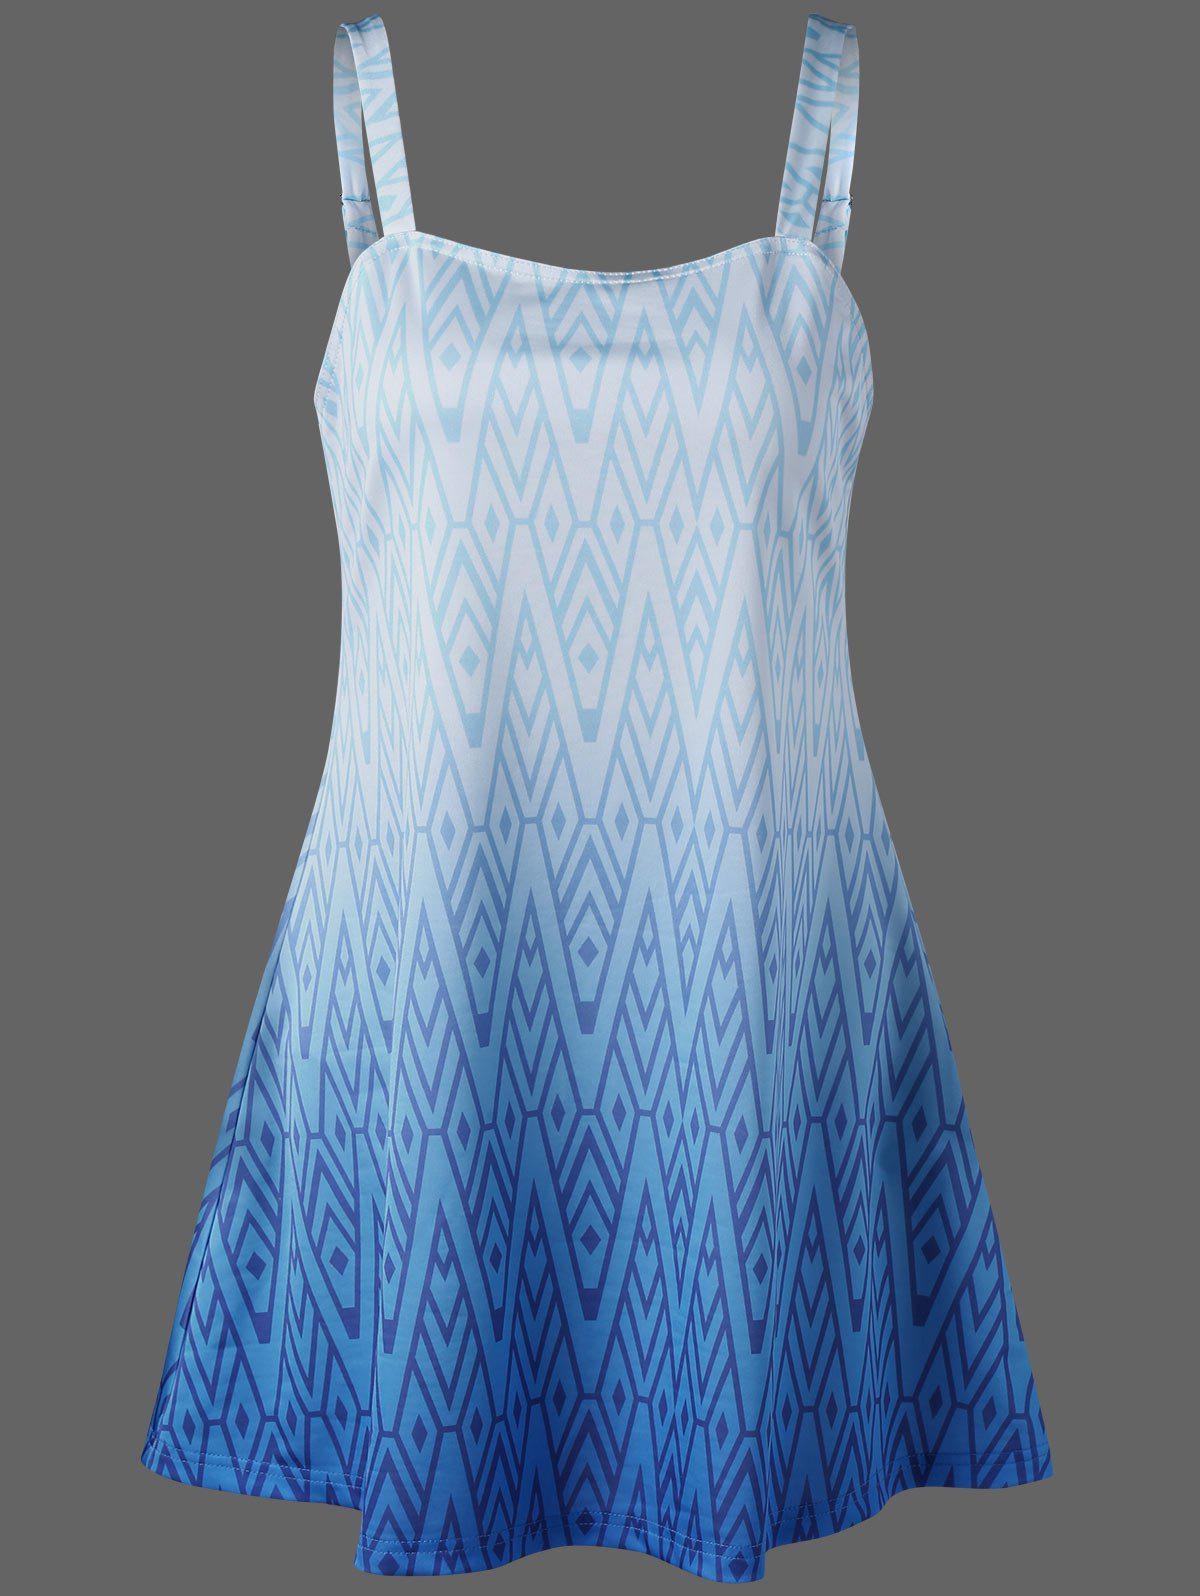 Zigzag sangle réglable Tankini Set - Bleu M